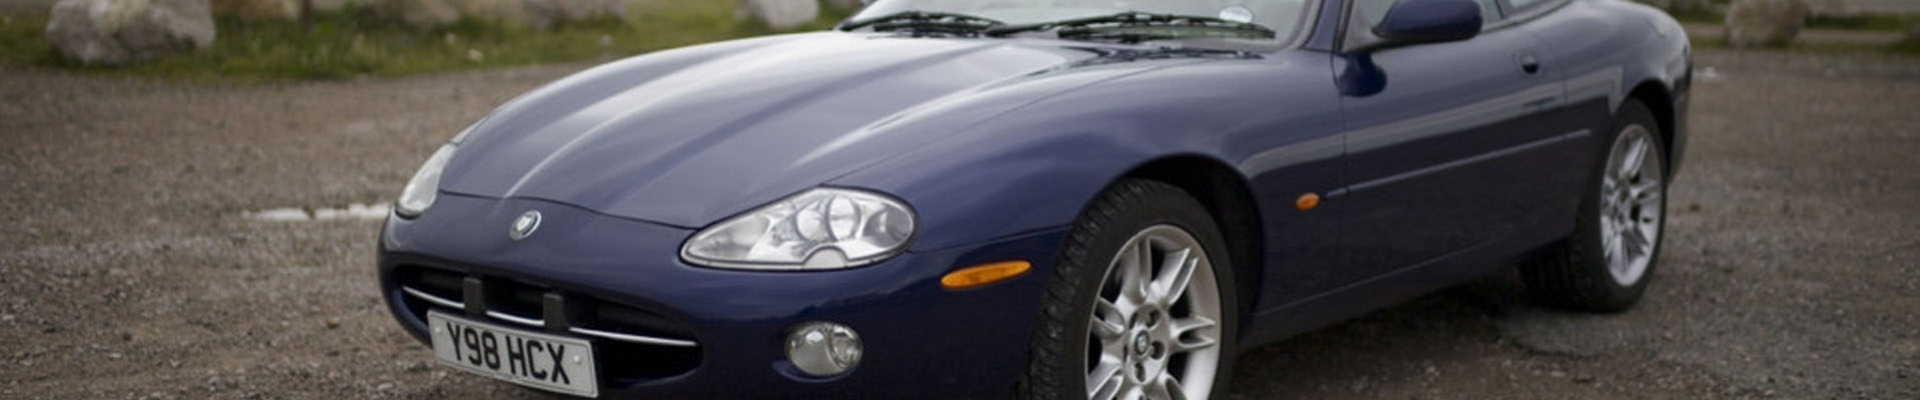 Independent Jaguar Specialists in North Wales